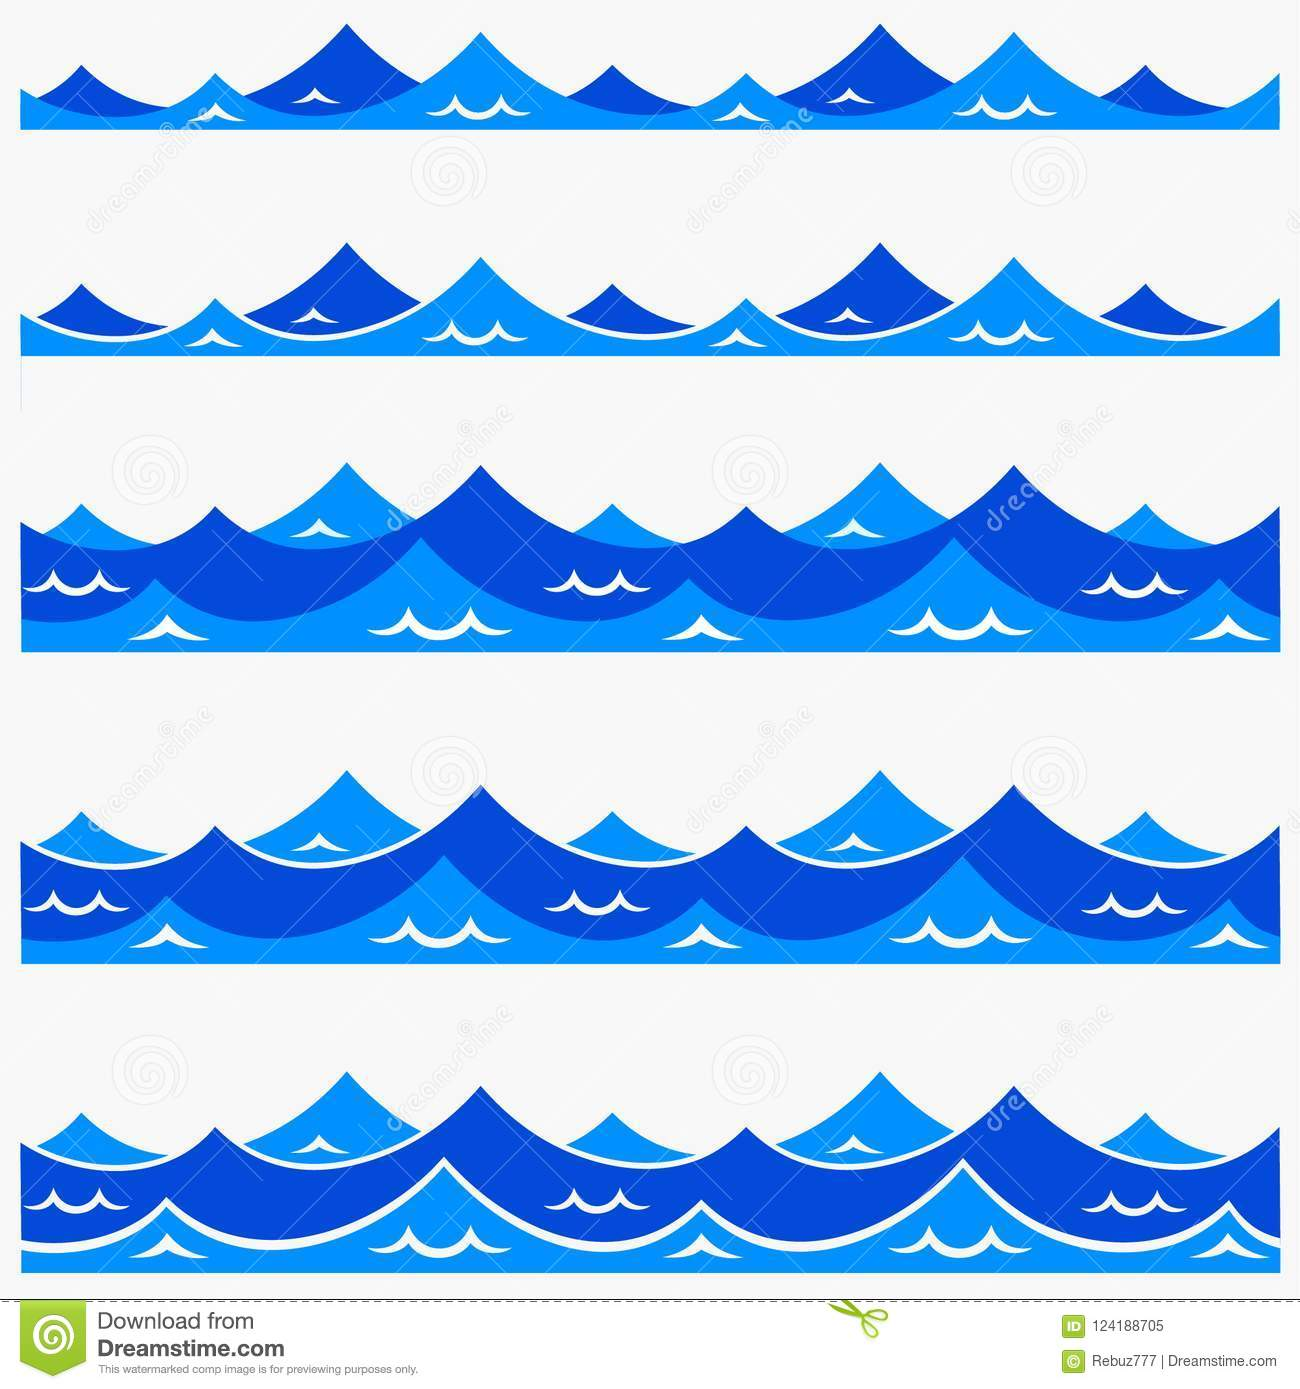 Under The Sea Stock Illustrations, Cliparts And Royalty Free Under The Sea  Vectors